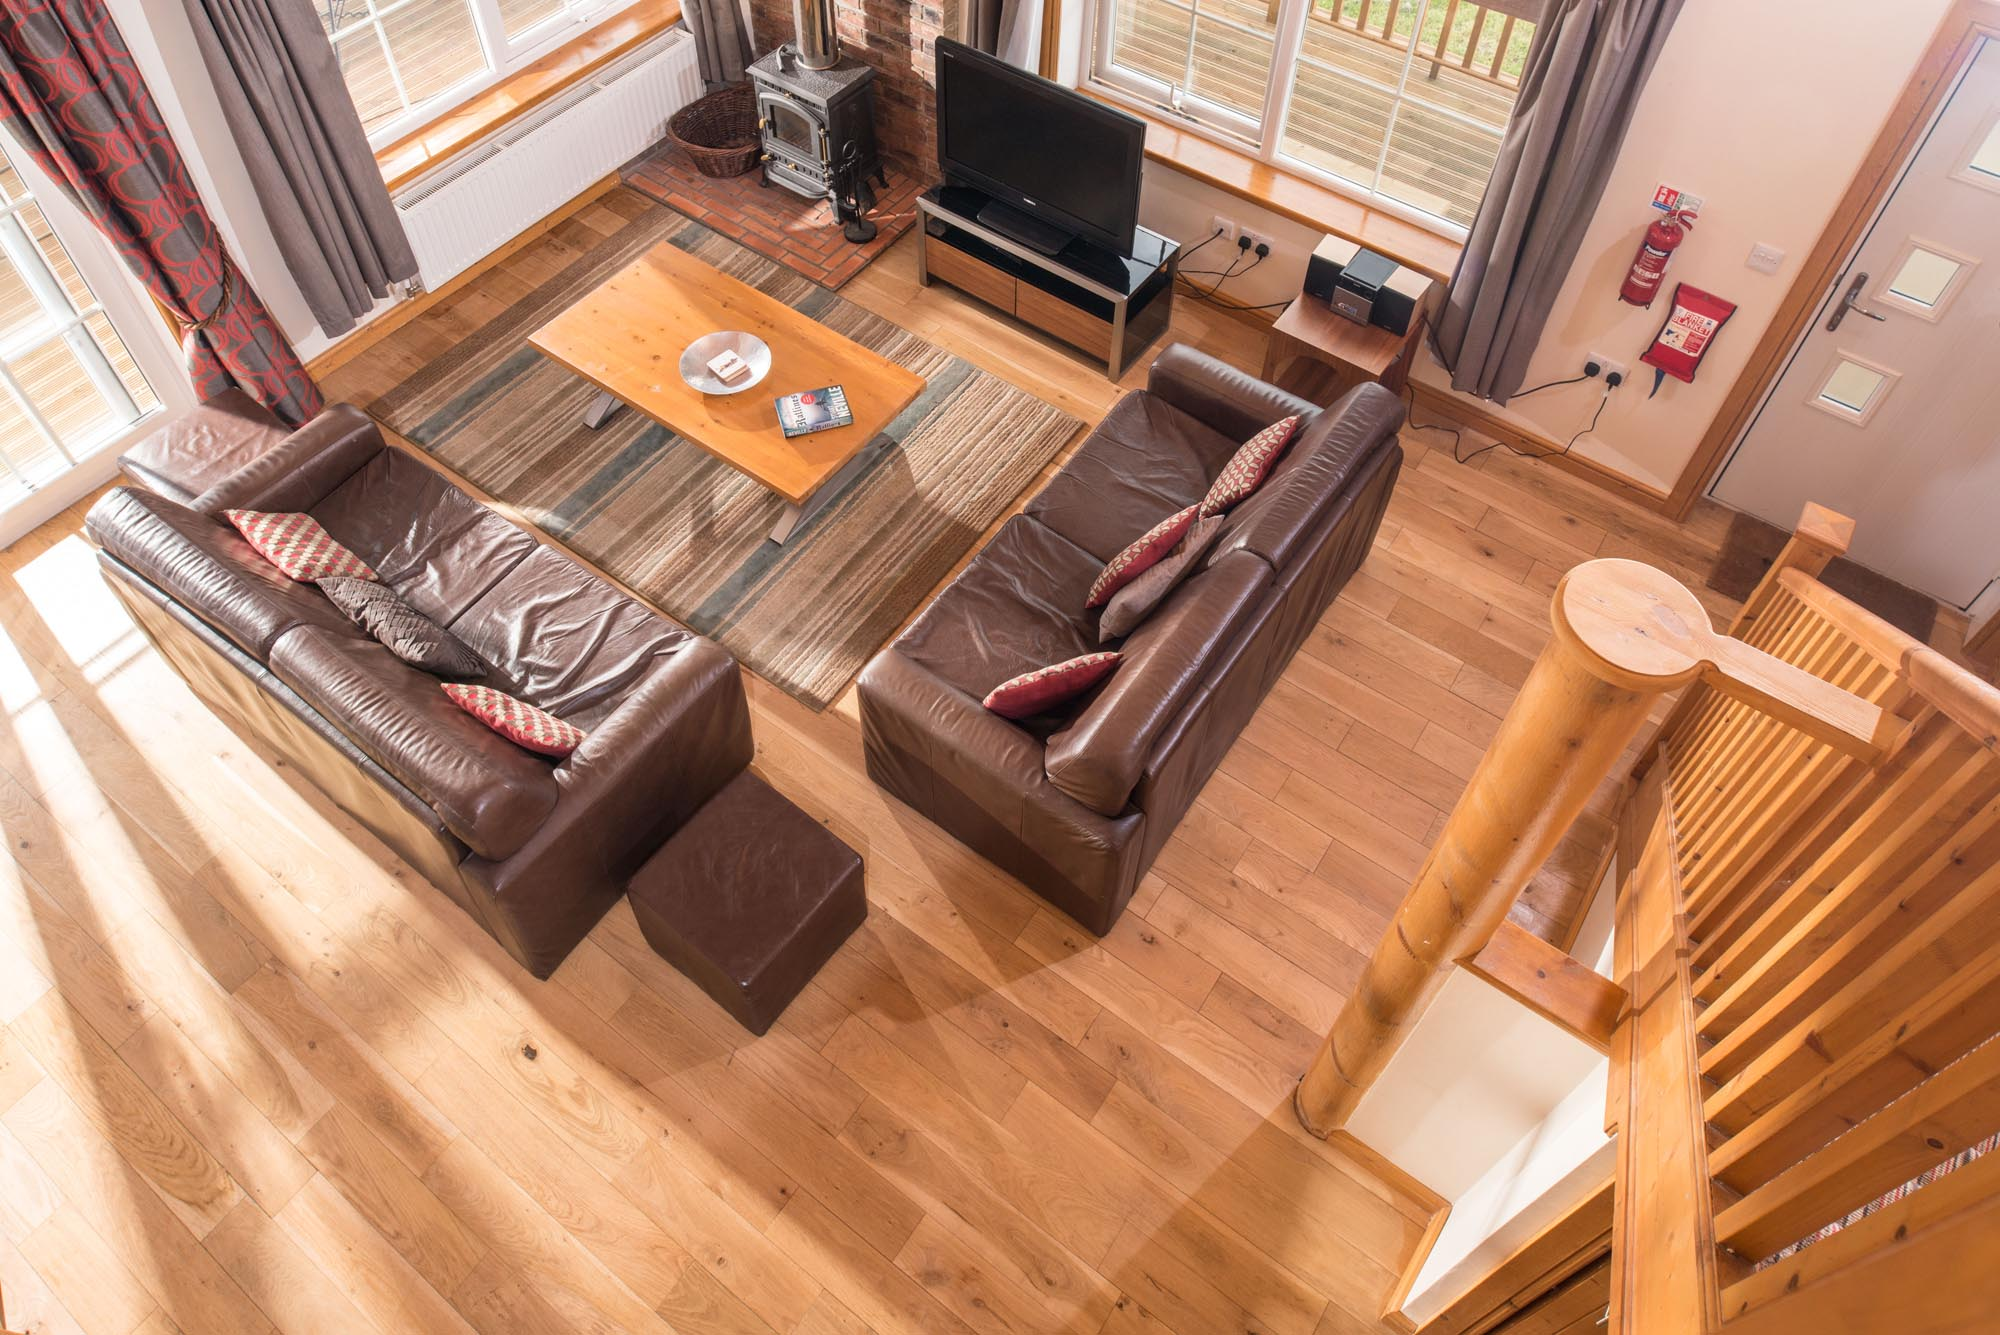 holiday lodge east yorkshire, Hot tub lodge Yorkshire, hoseasons